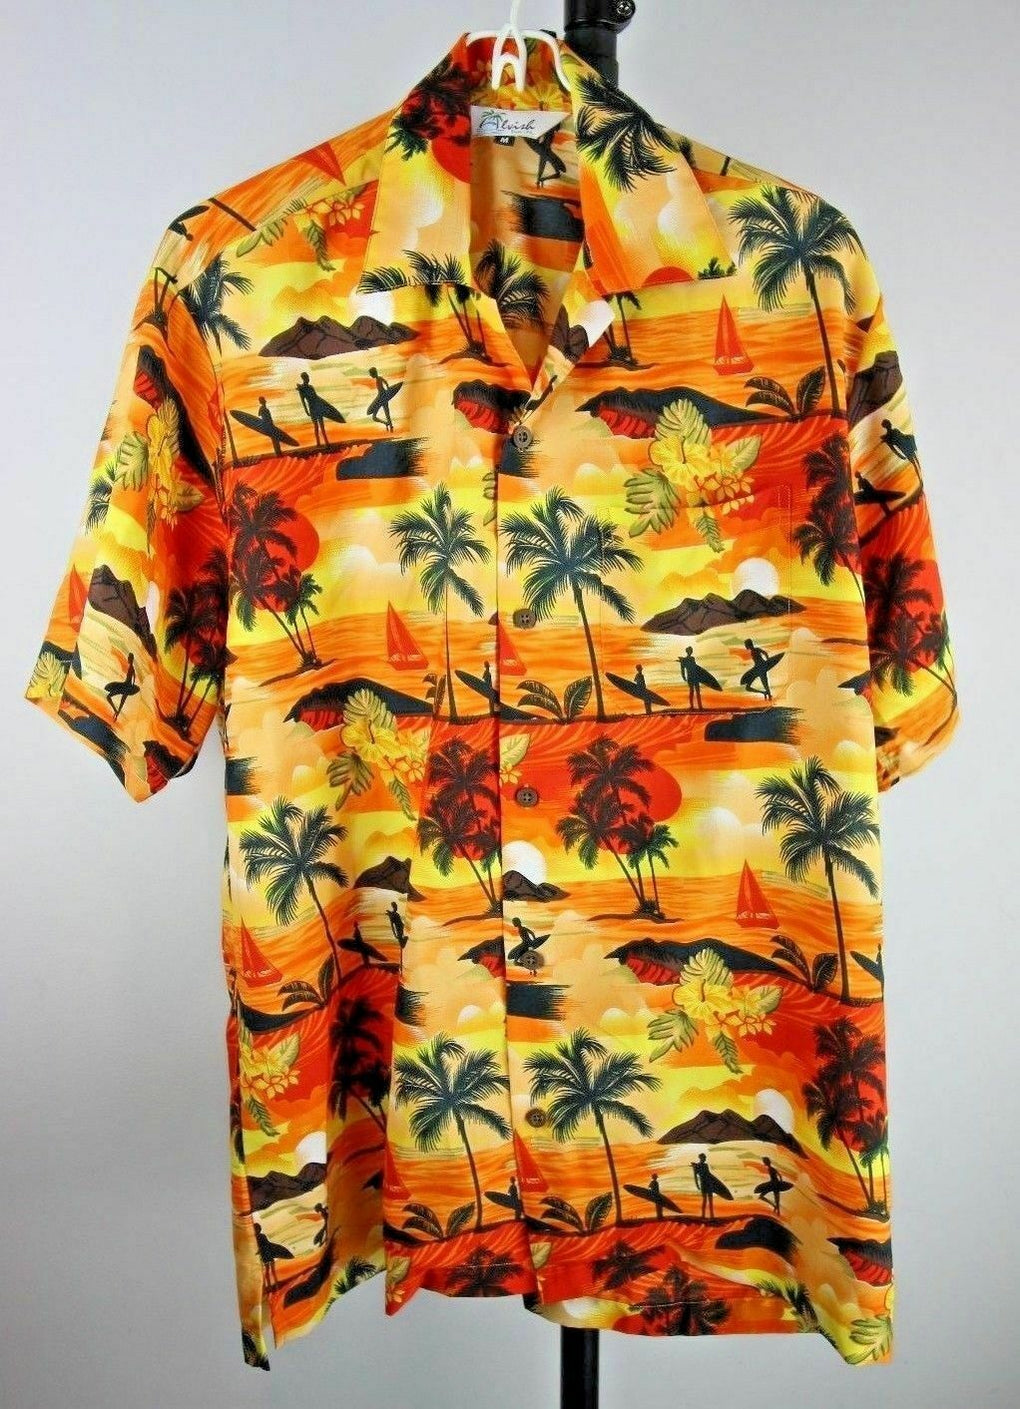 Alvish Enjoy Life Men's Button Hawaiian Camp Shirt M Surf Palm Trees Beach Sunset - Fazoom